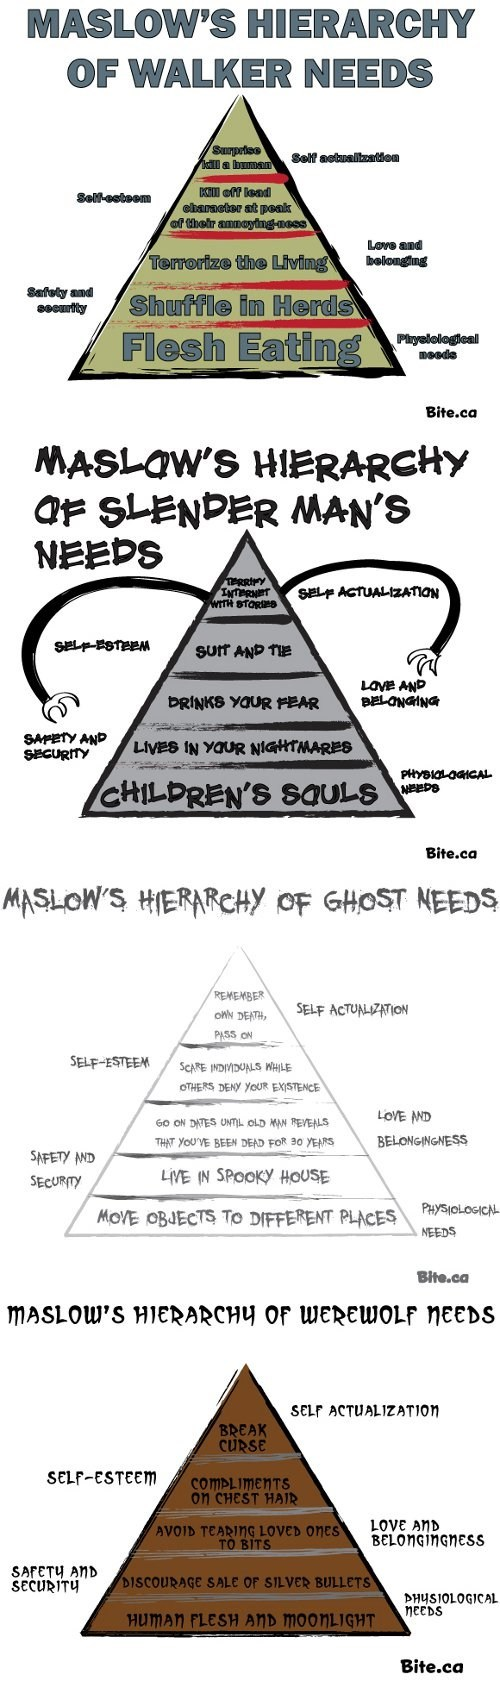 hierarchy of needs,The Walking Dead,monster,slenderman,ghosts,werewolves,halloween